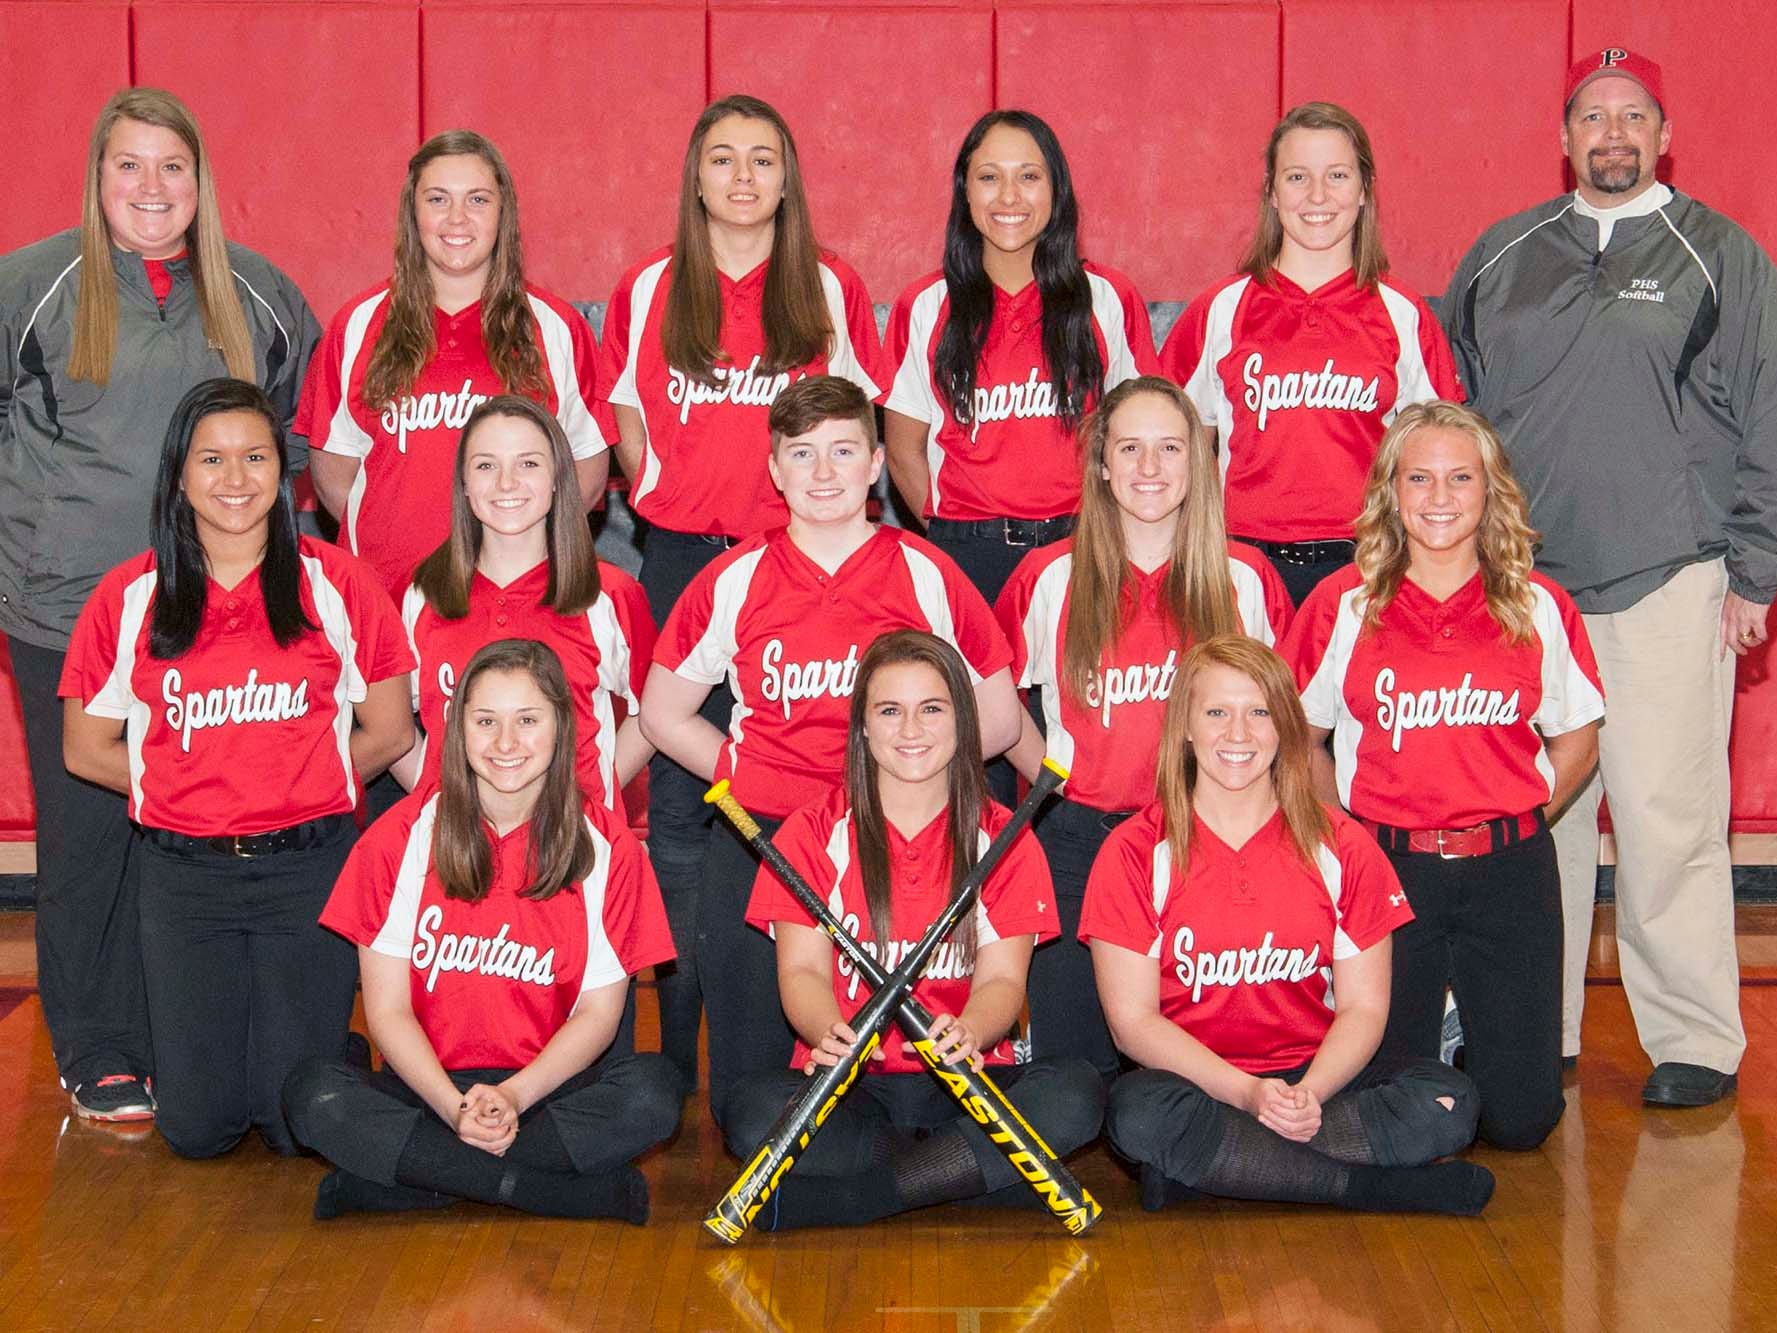 The Pleasant 2015 varsity softball team is, front row from left, Brooke Flickinger, Alli Decker and Georgie Stacy. Second row is Sara Kelly, Taylor Chase, Adriana Stanford, Catie Pelfrey and Arielle Anderson. Back row is coach Kendall Lust, Ashley Stone, Hannah McQuistion, Maria Curren, Abigail Russell and coach Bryan Decker.